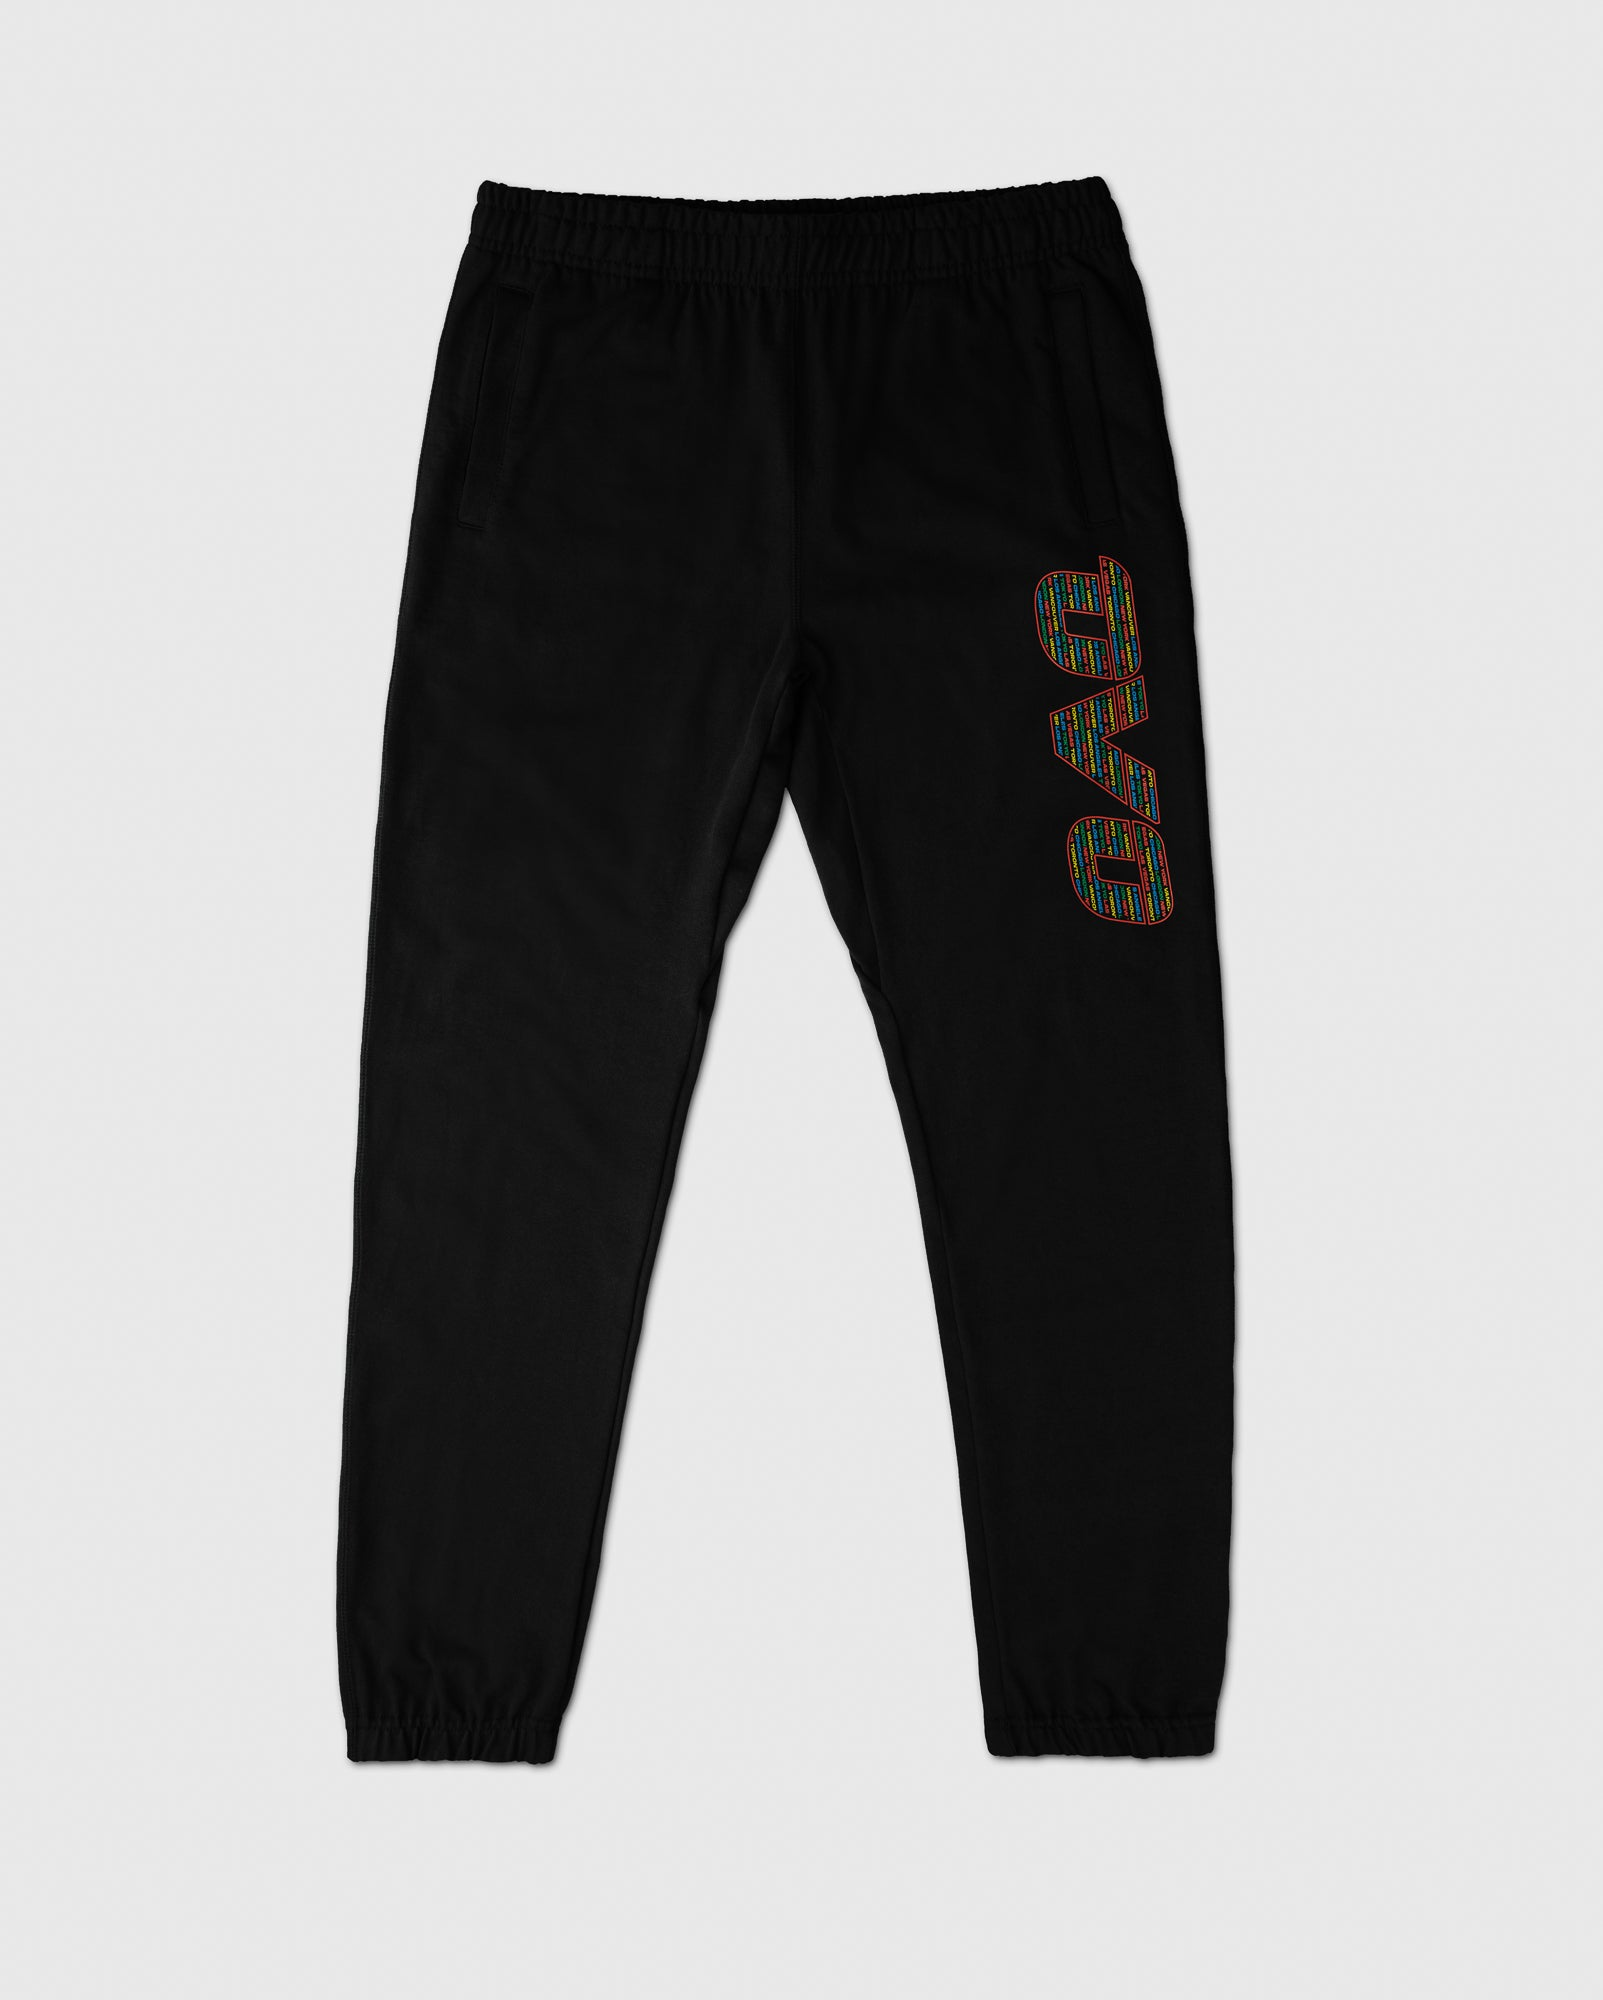 CITY RUNNER SWEATPANT - BLACK IMAGE #1